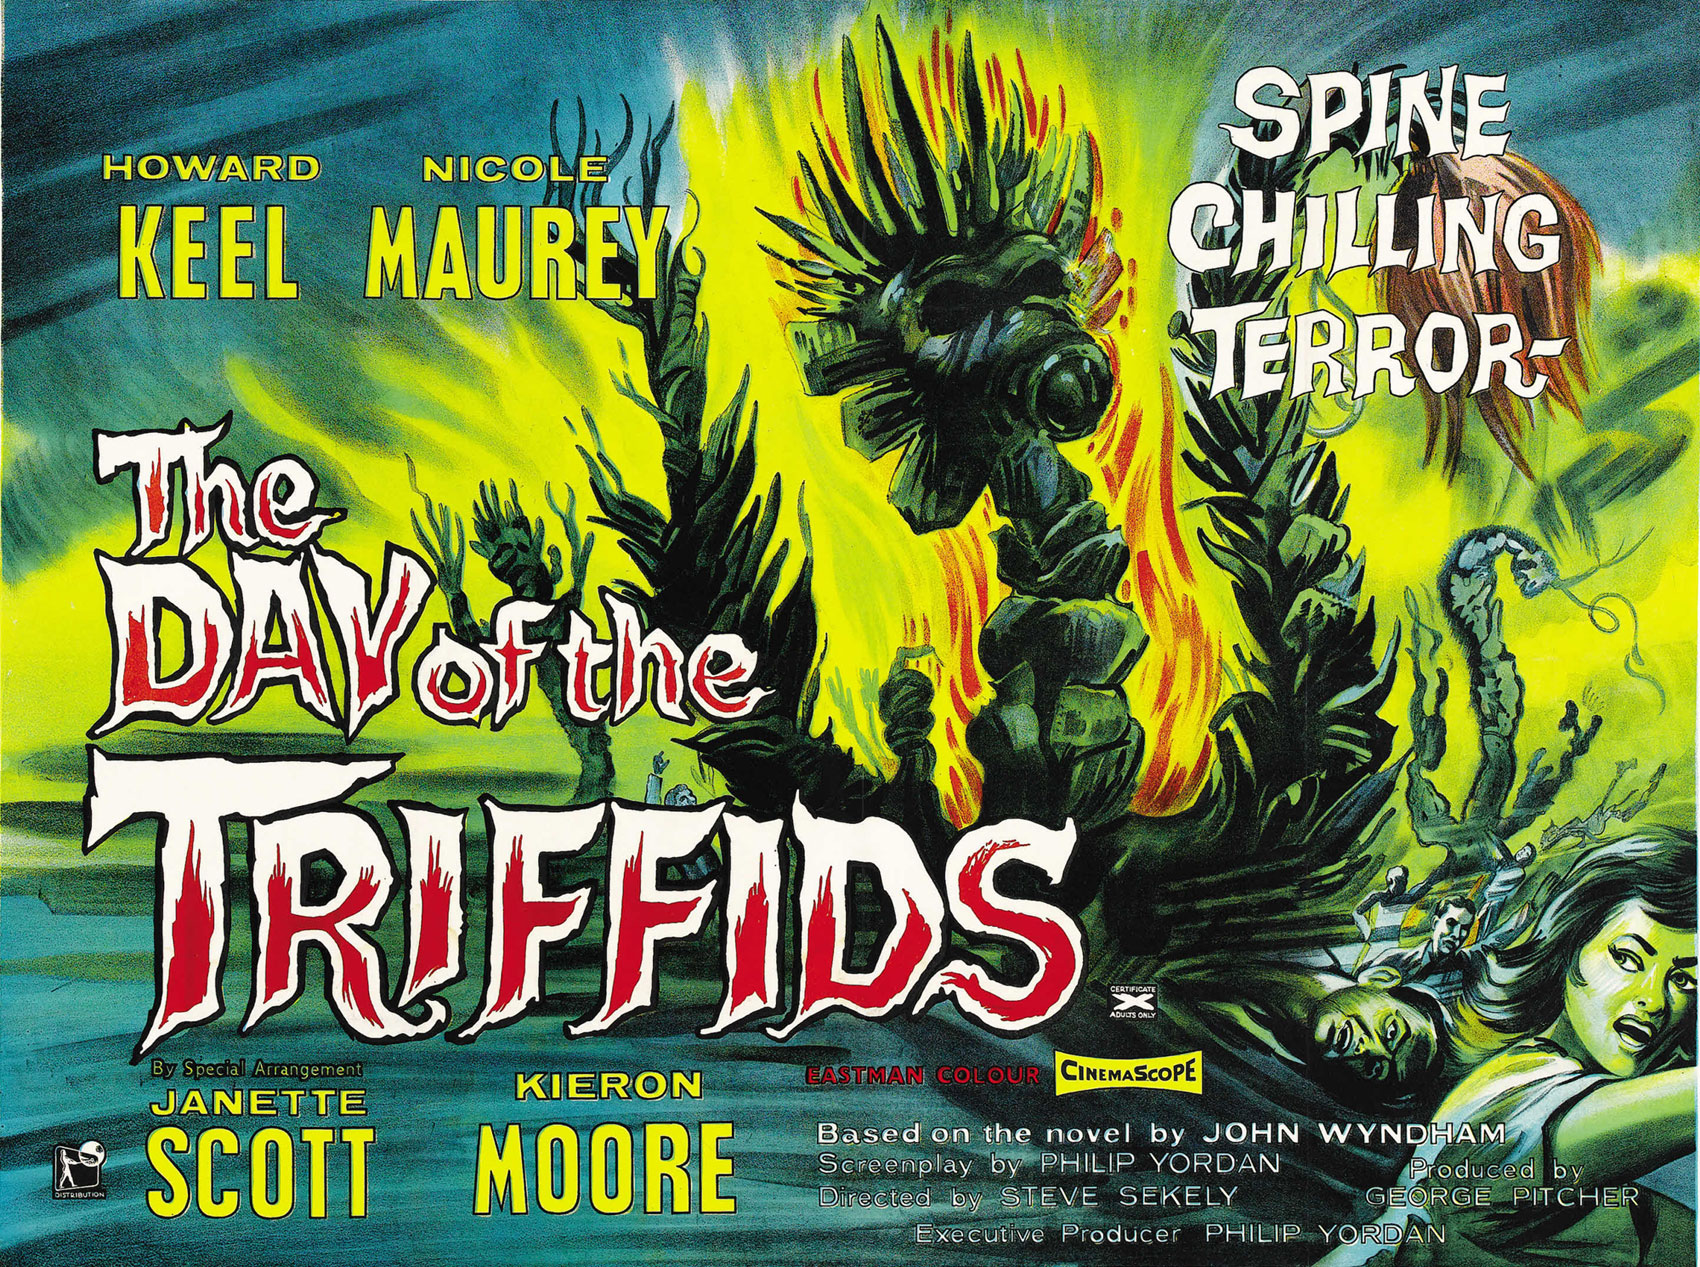 https://i1.wp.com/www.blastr.com/sites/blastr/files/day_of_triffids_poster_02.jpg